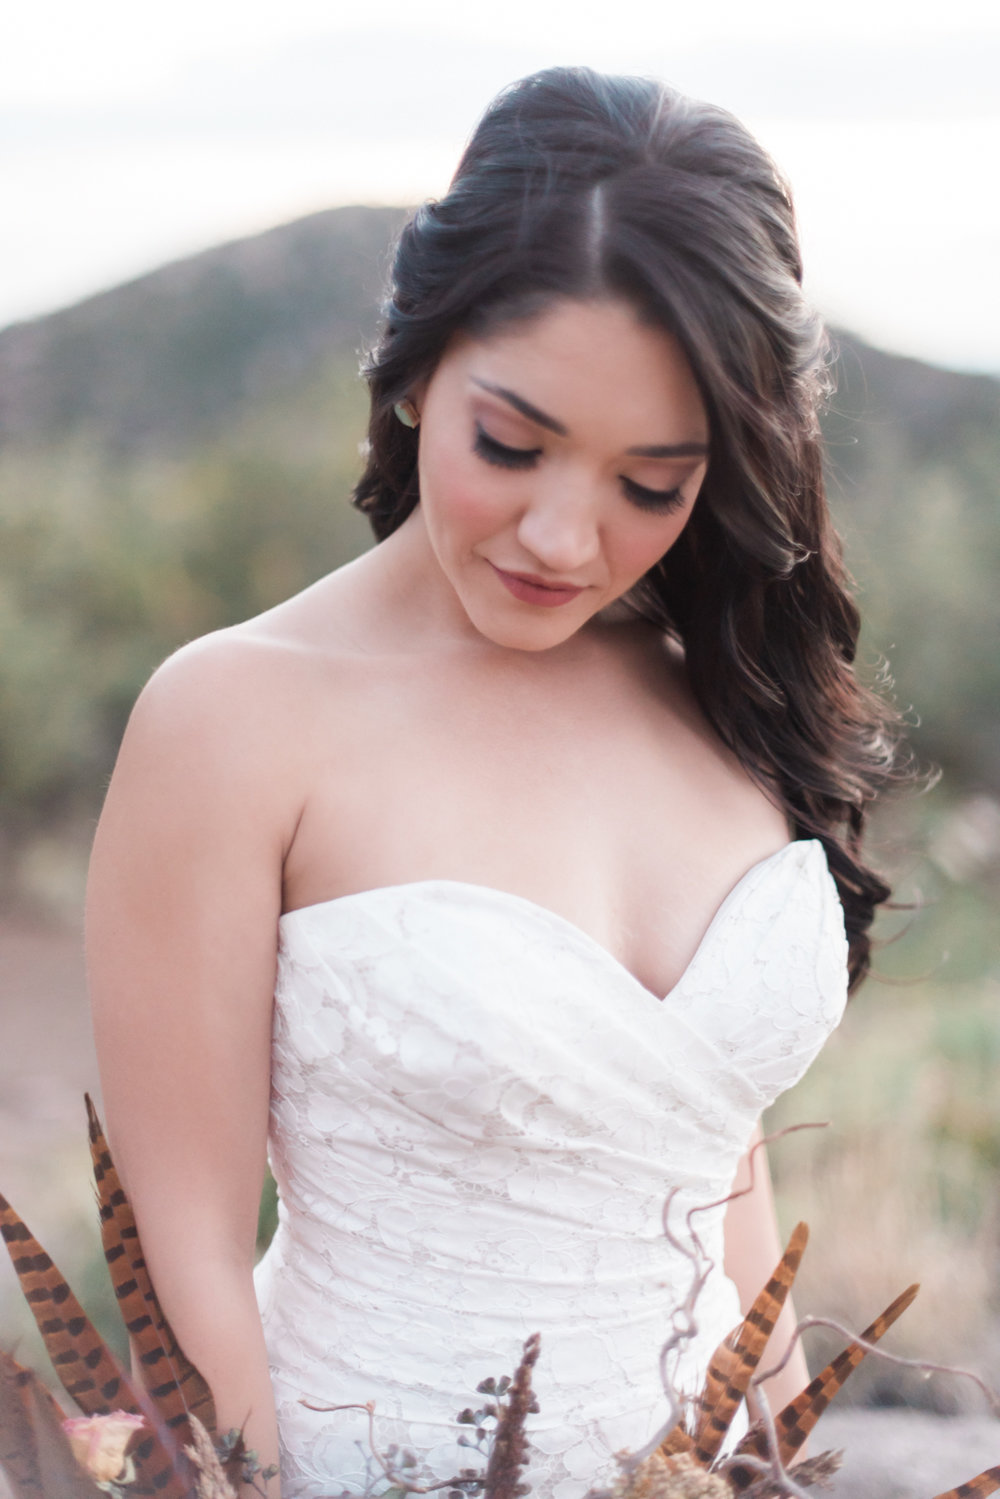 Editorial wedding shoot. Bridal hair & makeup, C. Johnson Makeup. Christy Johnson. Published online & in print. Photographer: Briana Archuleta. Sandia Foothills, Albuquerque, New Mexico.